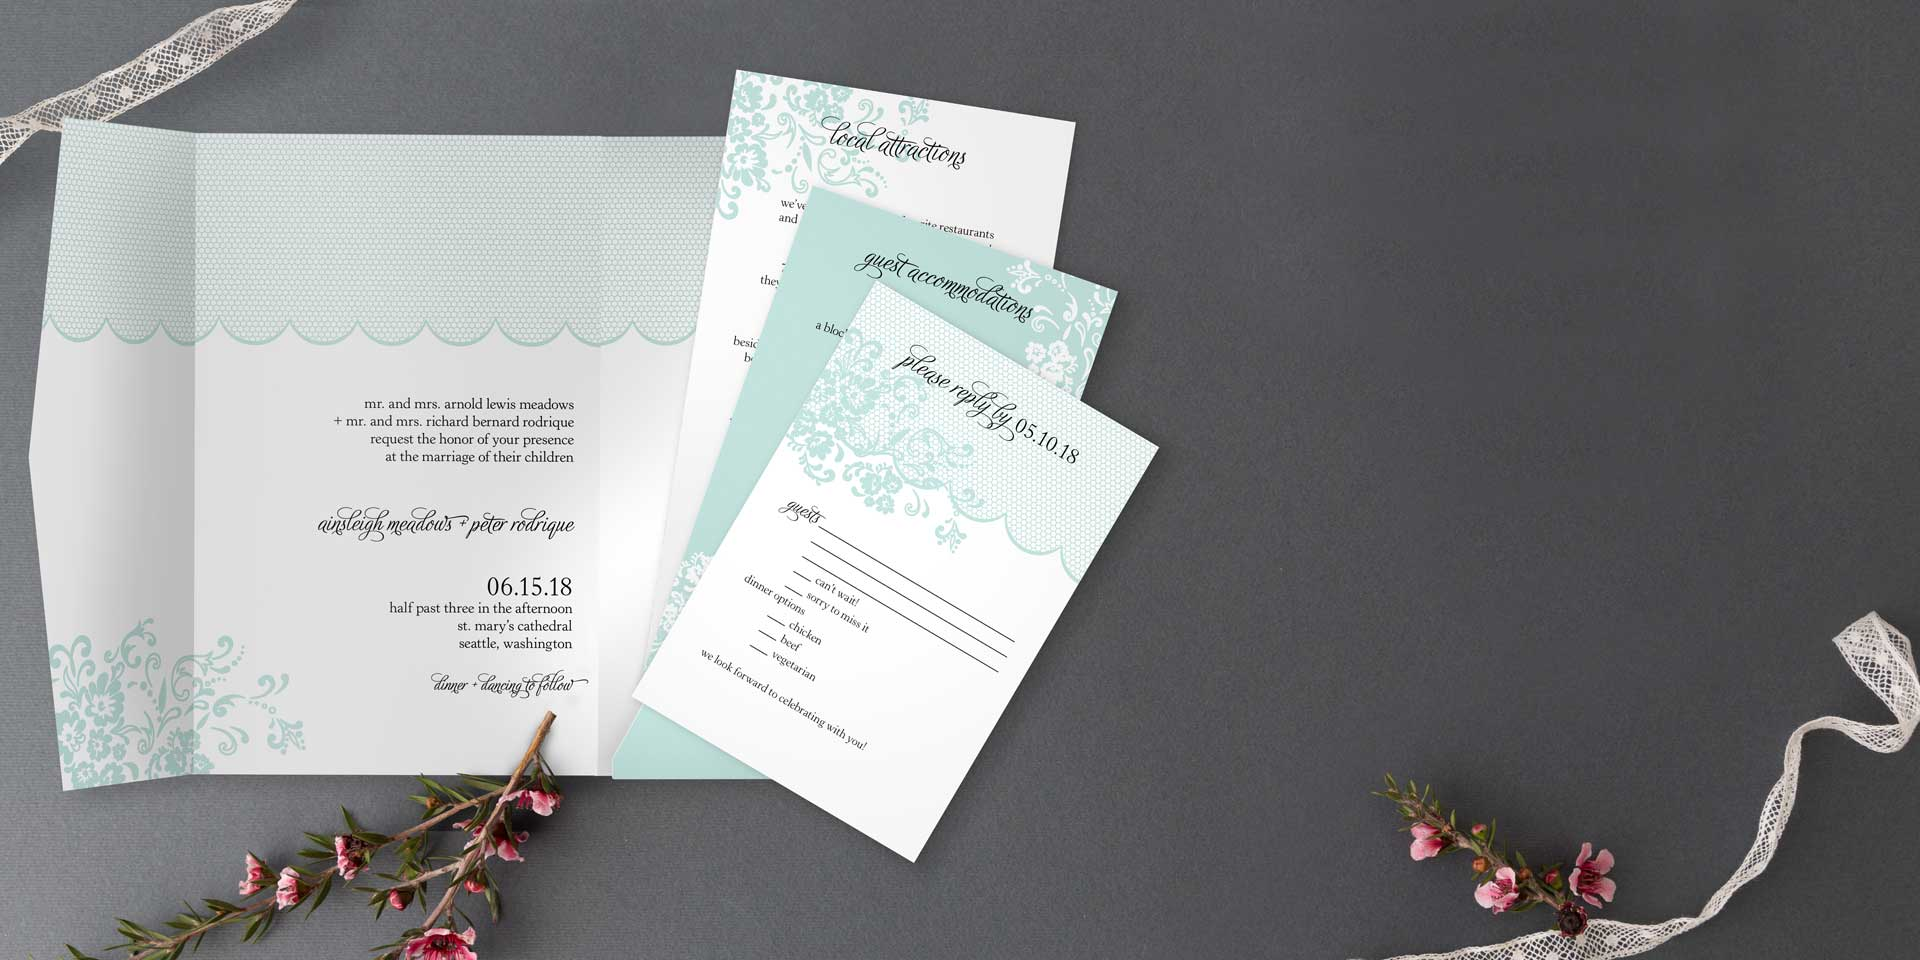 Pocket Wedding Invitations Match Your Style – Cool Places to Send Wedding Invitations